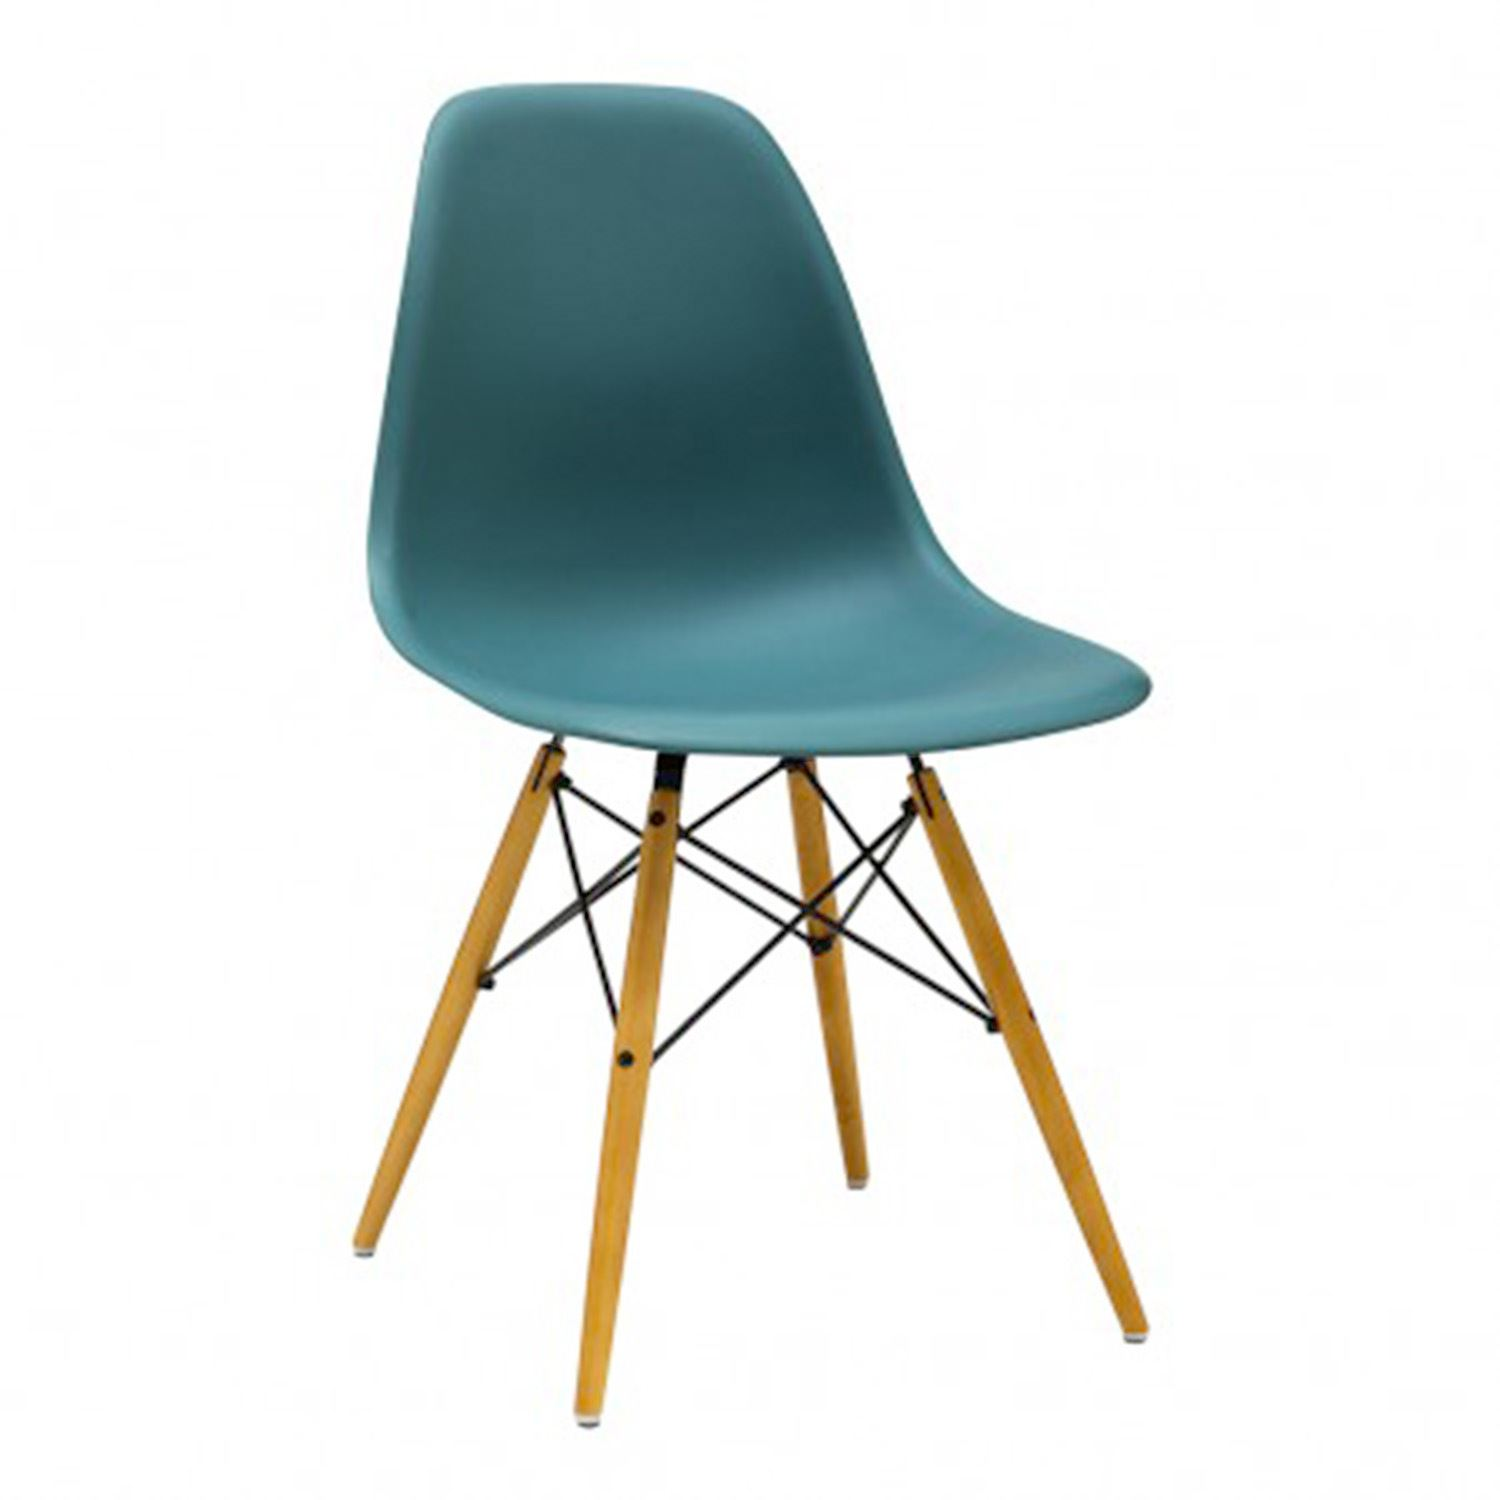 Eames Eiffel Charles Ray Eames Eiffel Inspired Dsw Dining Chair Retro